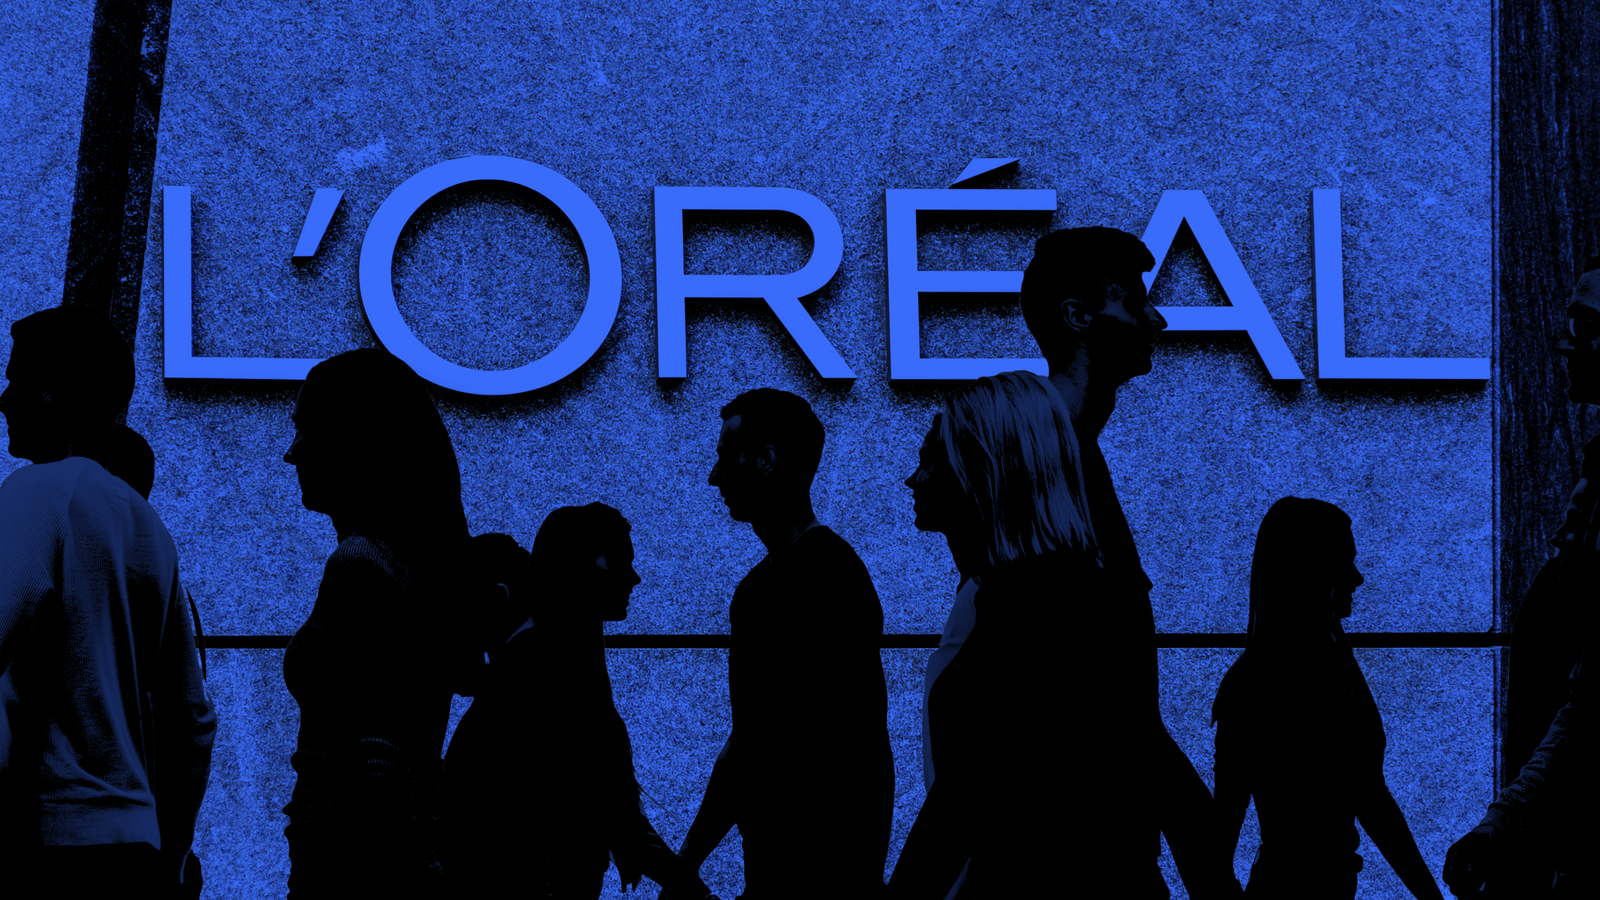 L'Oreal workers are worried they could lose their jobs if they don't return to the office